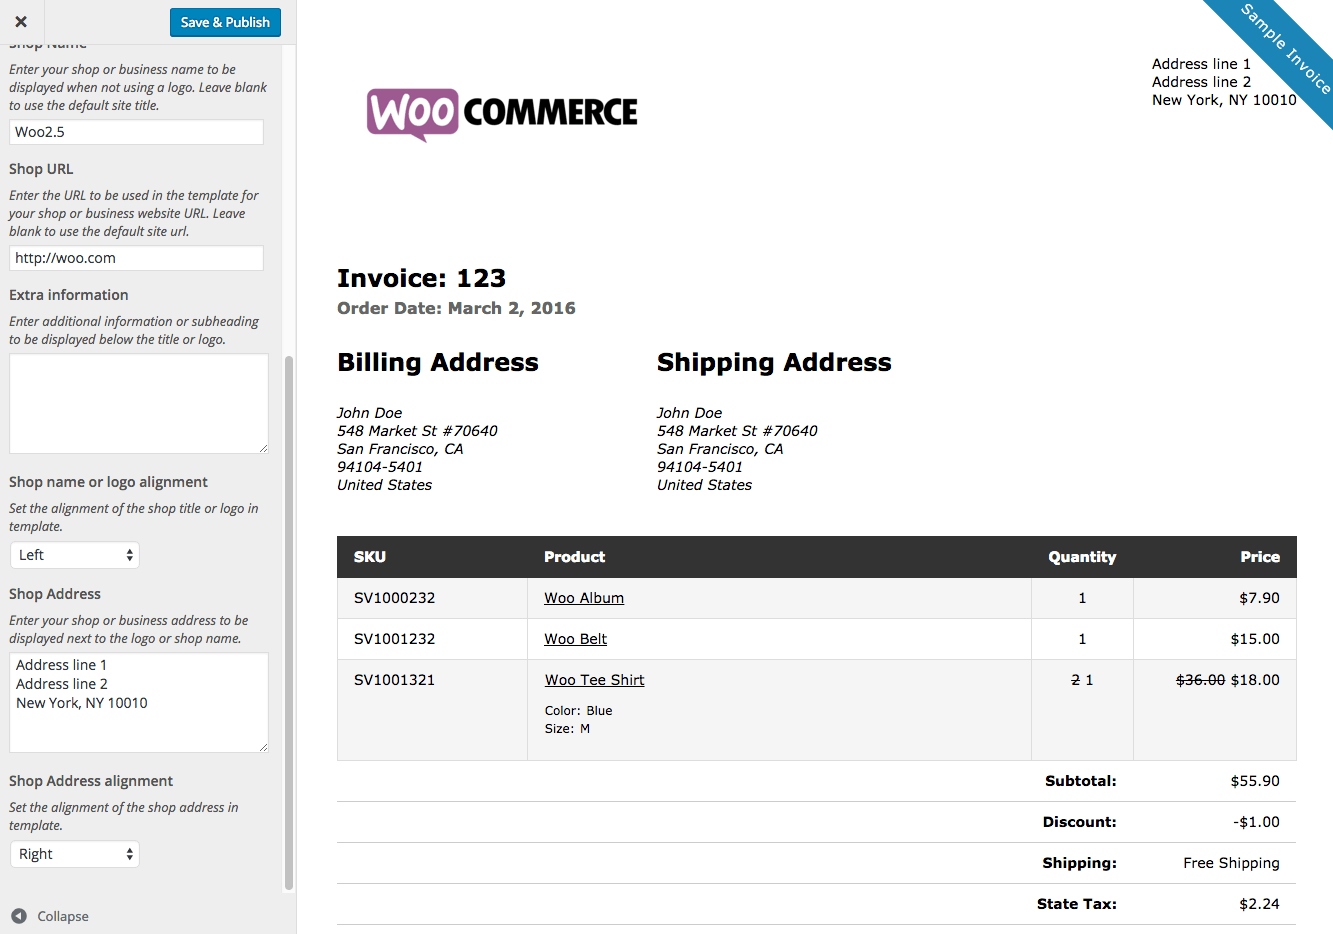 Coachoutletonlineplusus  Marvelous Woocommerce Print Invoices Amp Packing Lists  Woocommerce Docs With Handsome Woocommerce Print Invoices  Packing Lists Customizer With Captivating Small Business Receipt Tracking Also View Electronic Ticket Receipt In Addition Make Fake Receipts Online And Lic Online Premium Paid Receipt As Well As Sample Of House Rent Receipt Additionally Format Of Payment Receipt From Docswoocommercecom With Coachoutletonlineplusus  Handsome Woocommerce Print Invoices Amp Packing Lists  Woocommerce Docs With Captivating Woocommerce Print Invoices  Packing Lists Customizer And Marvelous Small Business Receipt Tracking Also View Electronic Ticket Receipt In Addition Make Fake Receipts Online From Docswoocommercecom